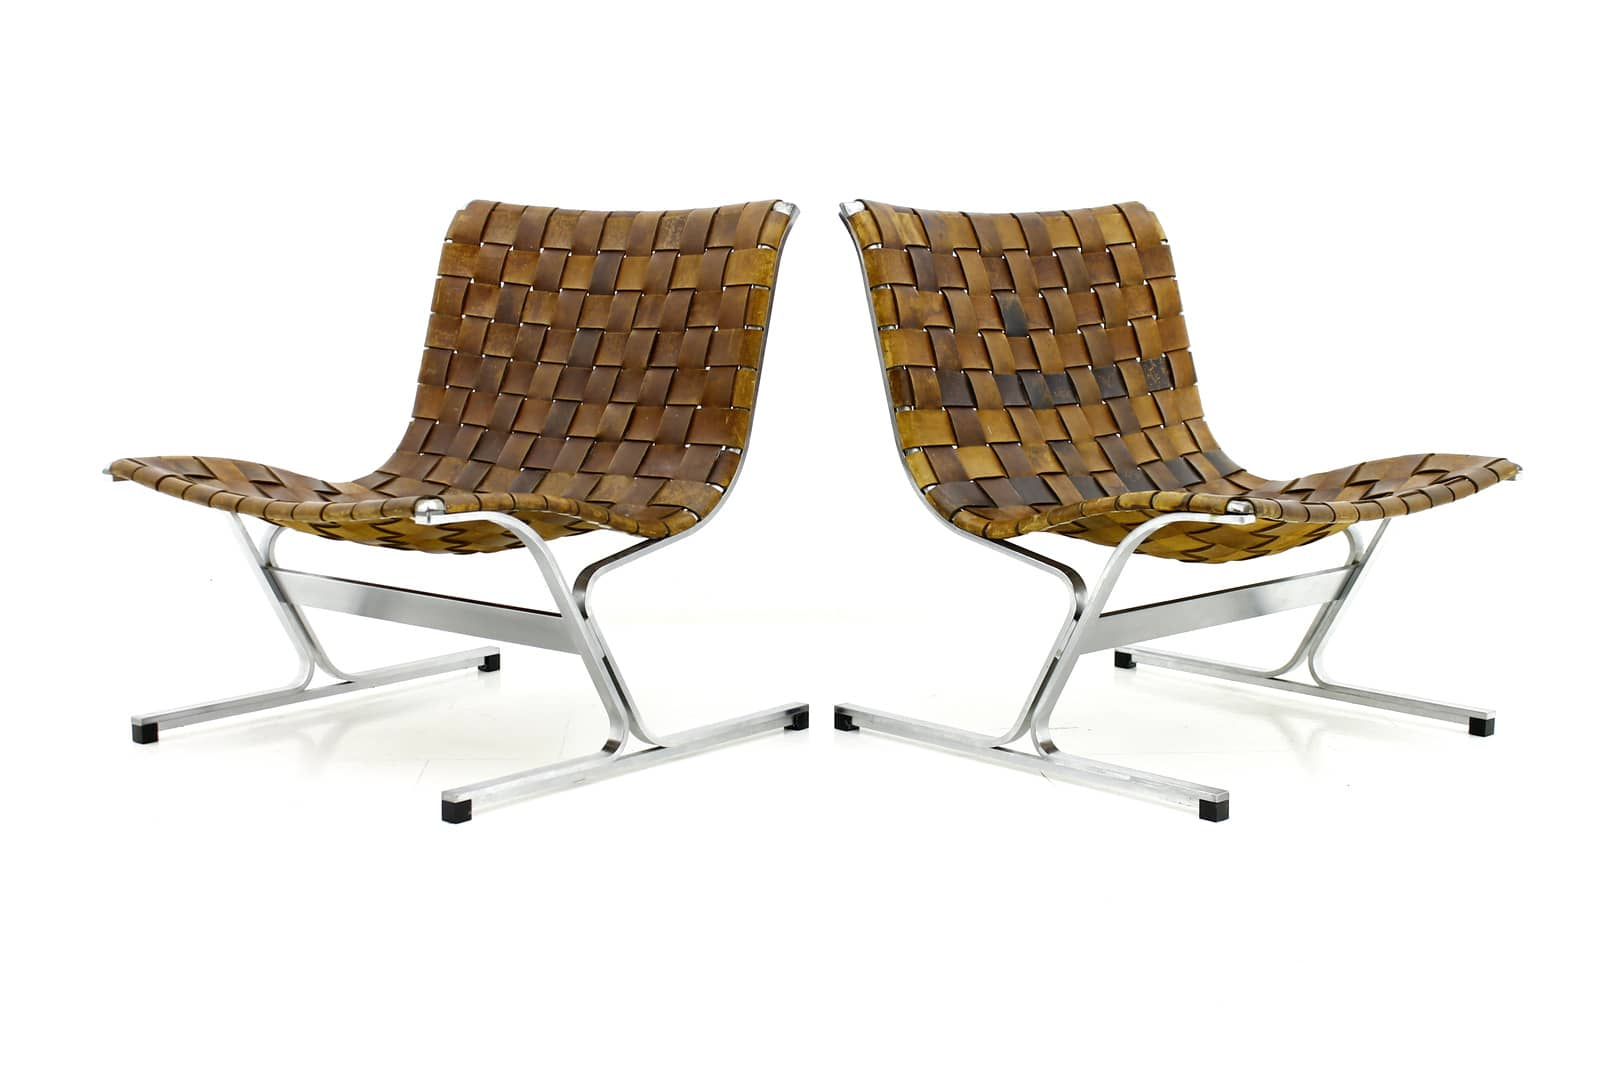 A Pair of Lounge Chairs PLR 1 by Ross Littell, Italy 1968